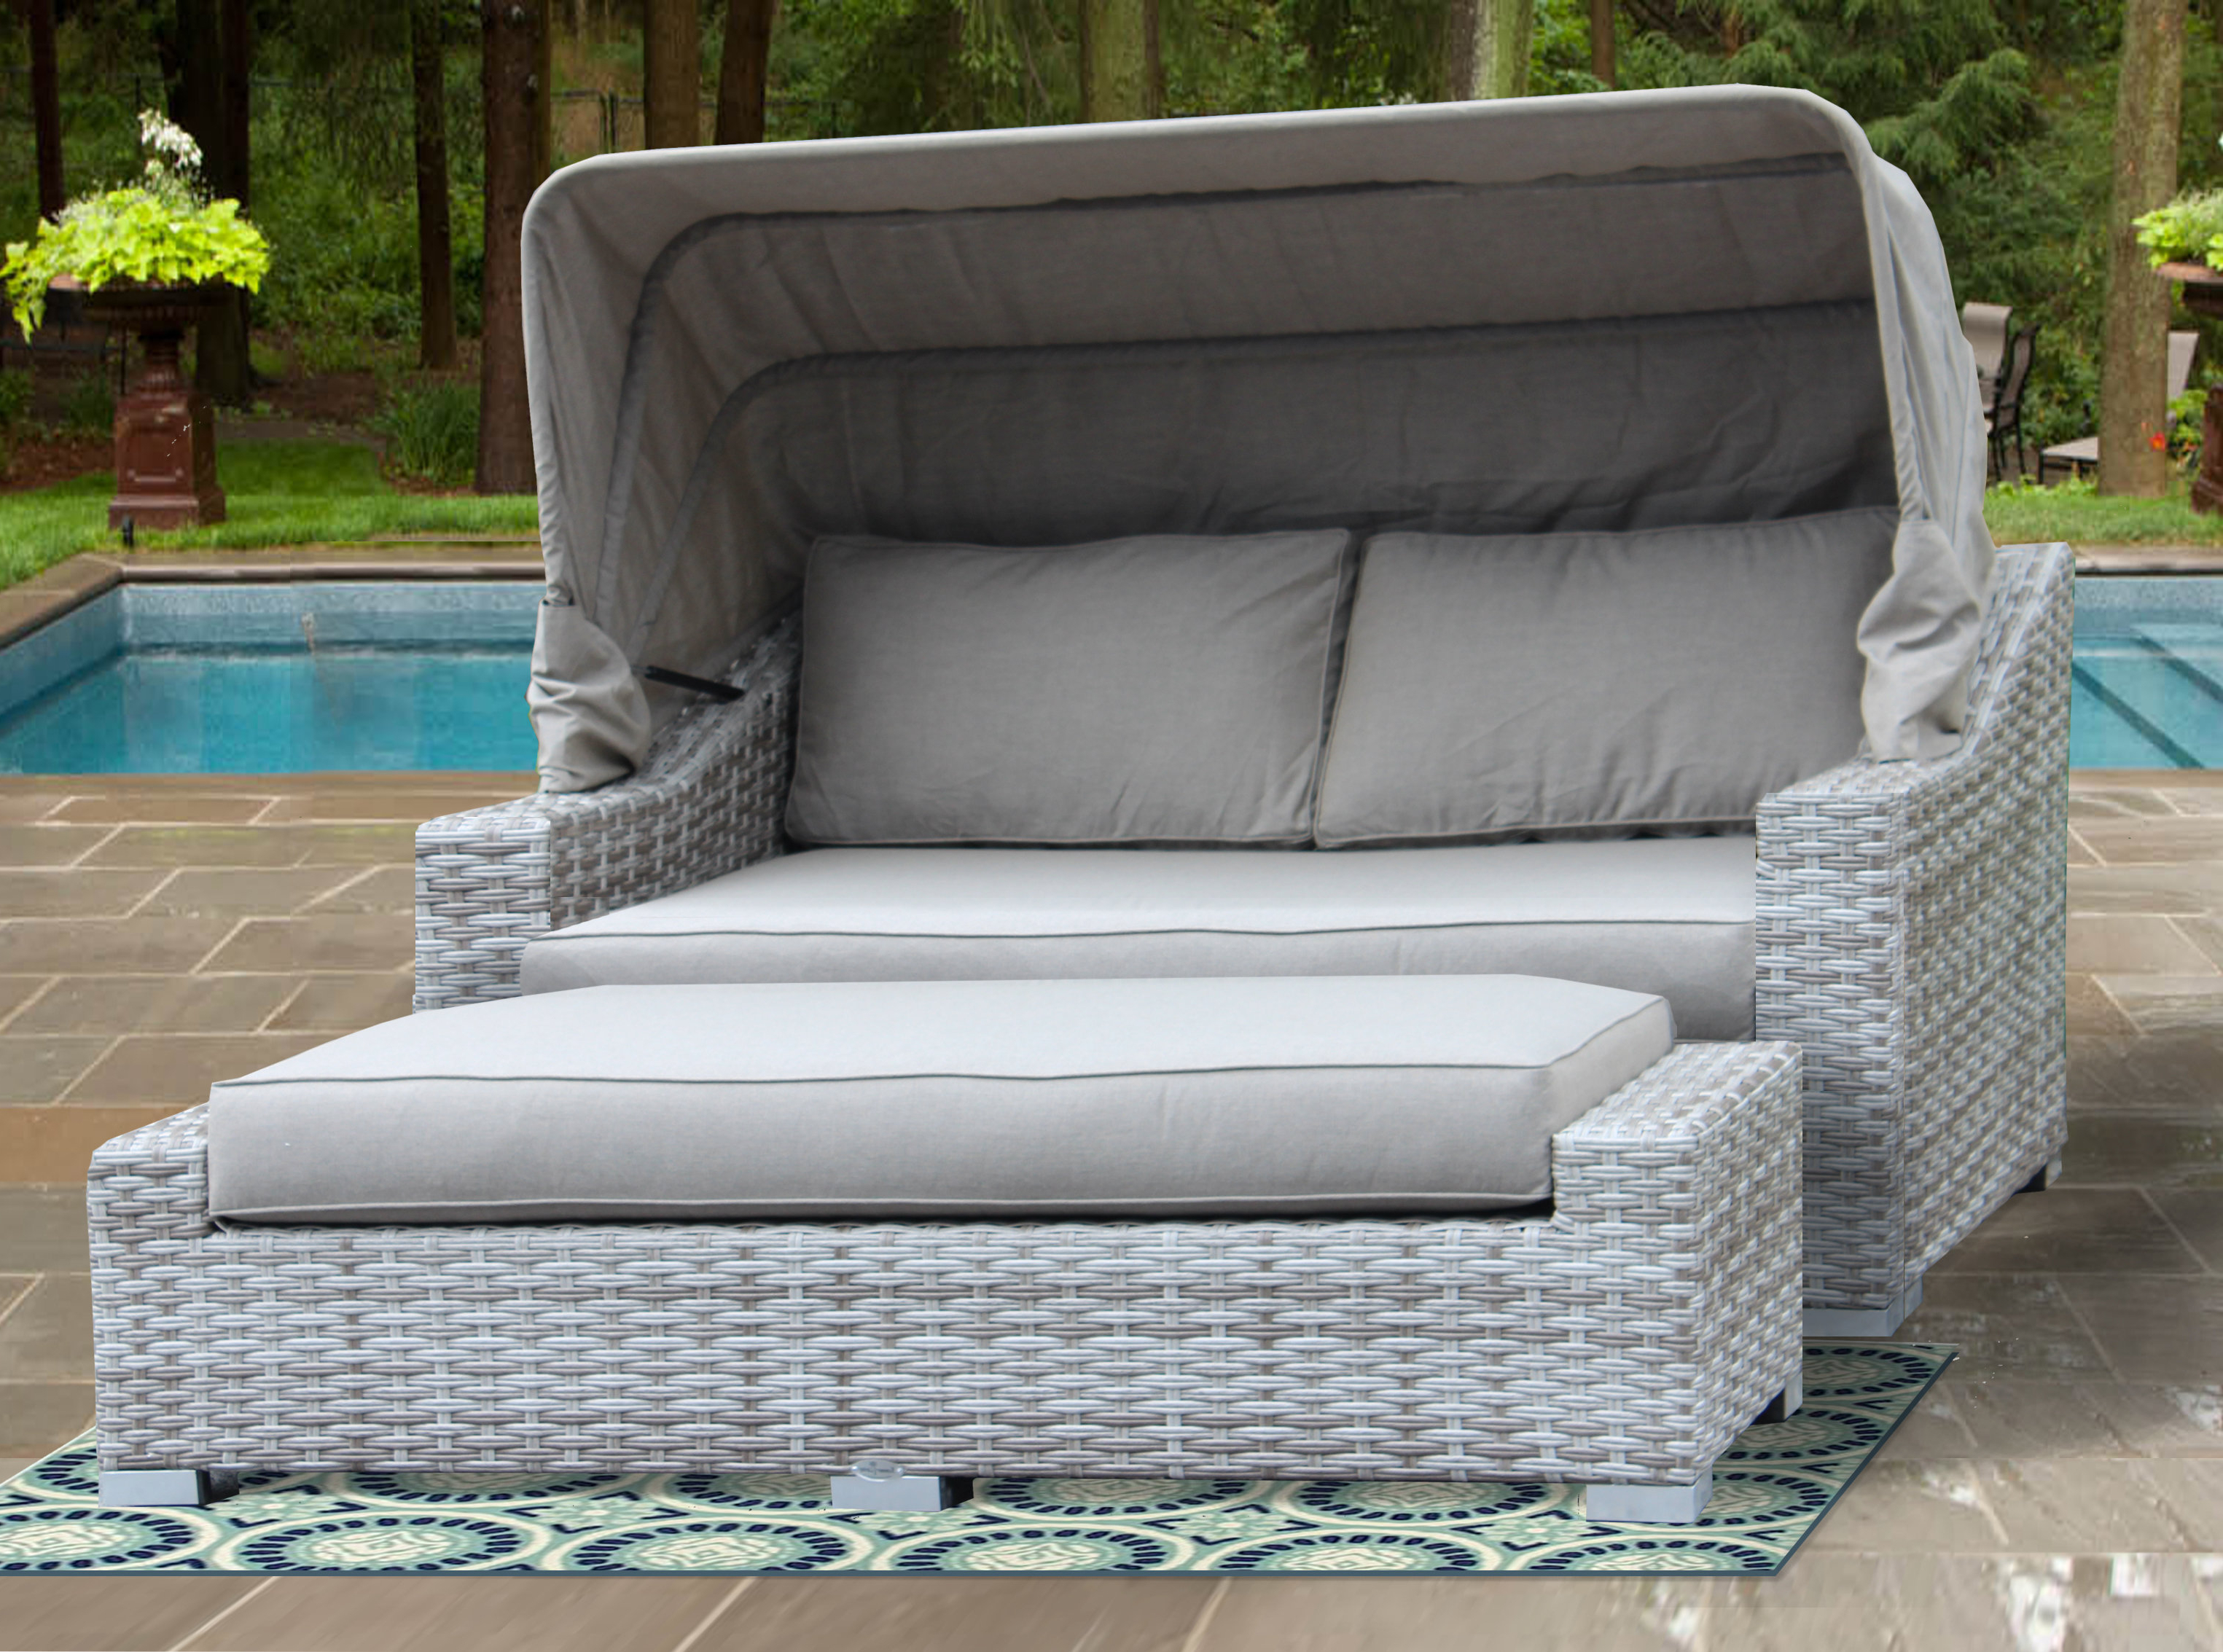 Lammers Outdoor Wicker Daybeds With Cushions Within Most Up To Date Luka Patio Daybed With Sunbrella Cushions (View 17 of 20)